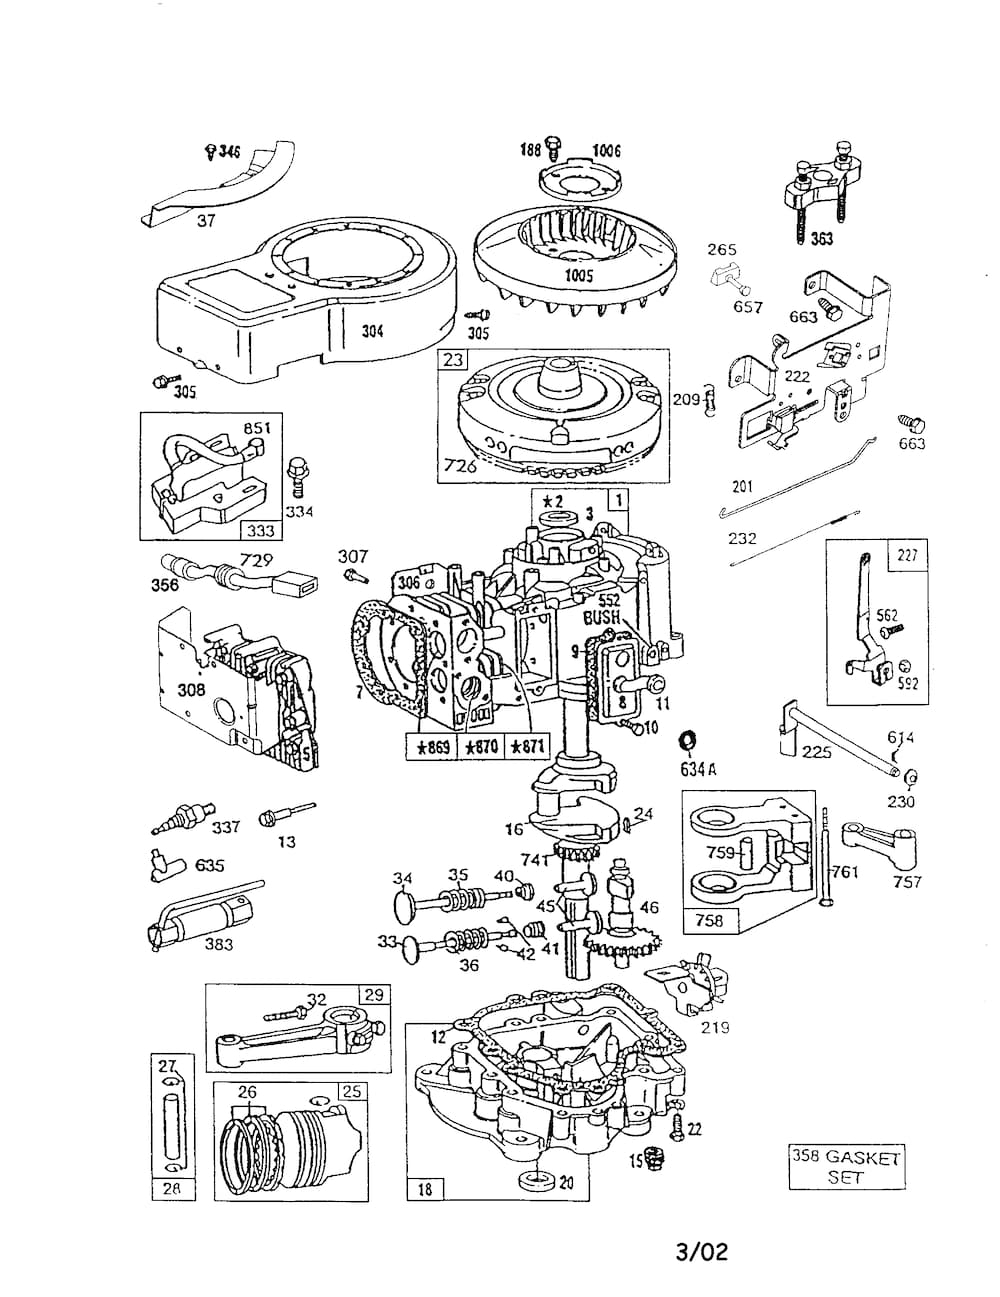 Wiring Diagram Briggs Stratton Model 289707 Briggs And